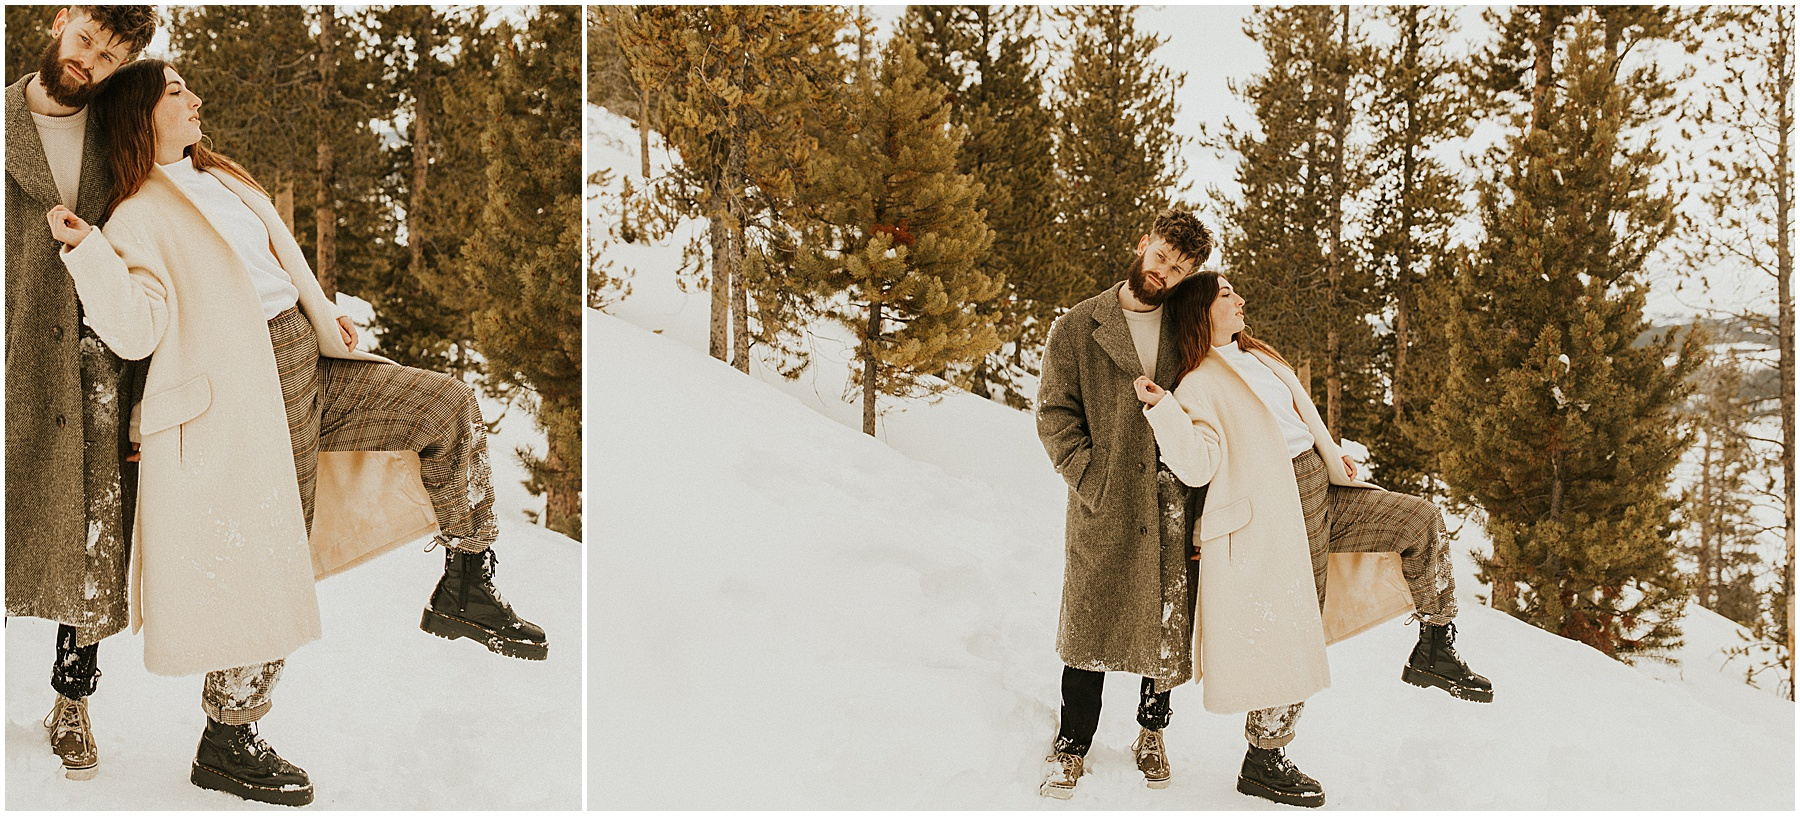 Proposal and engagement session in Breckenridge, Colorado Saphire Point_0386.jpg